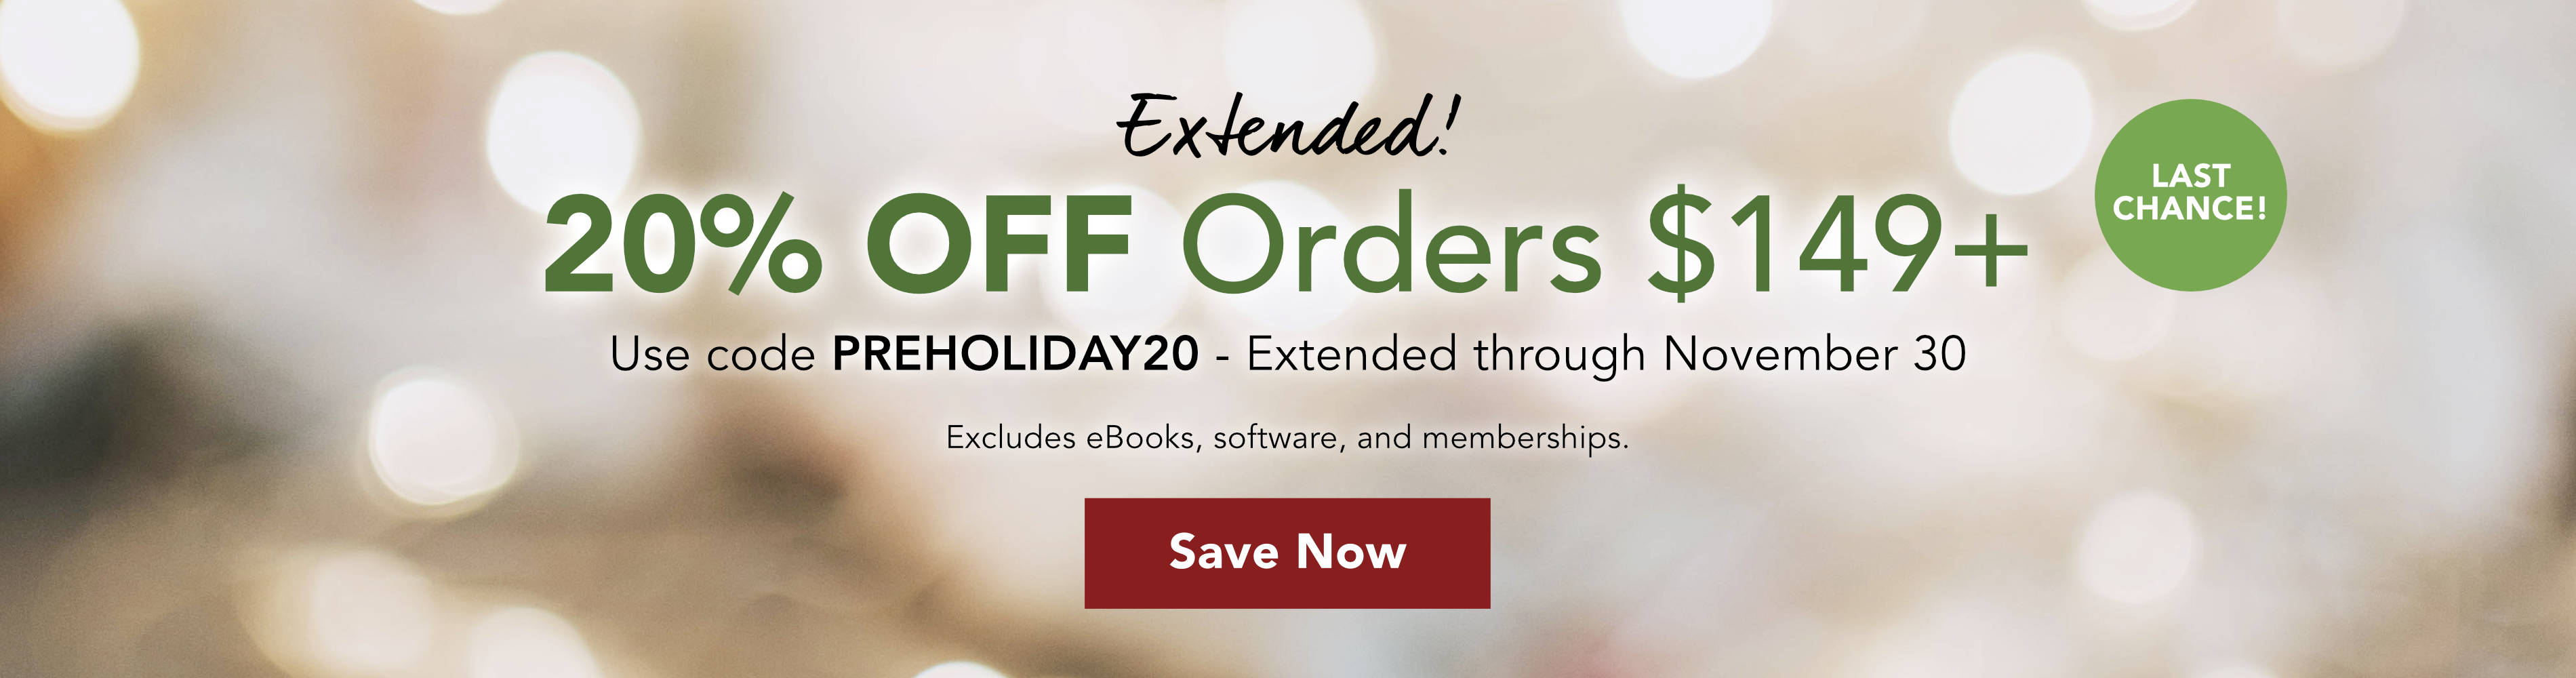 20% off o$149 Plus - Pre-holiday!